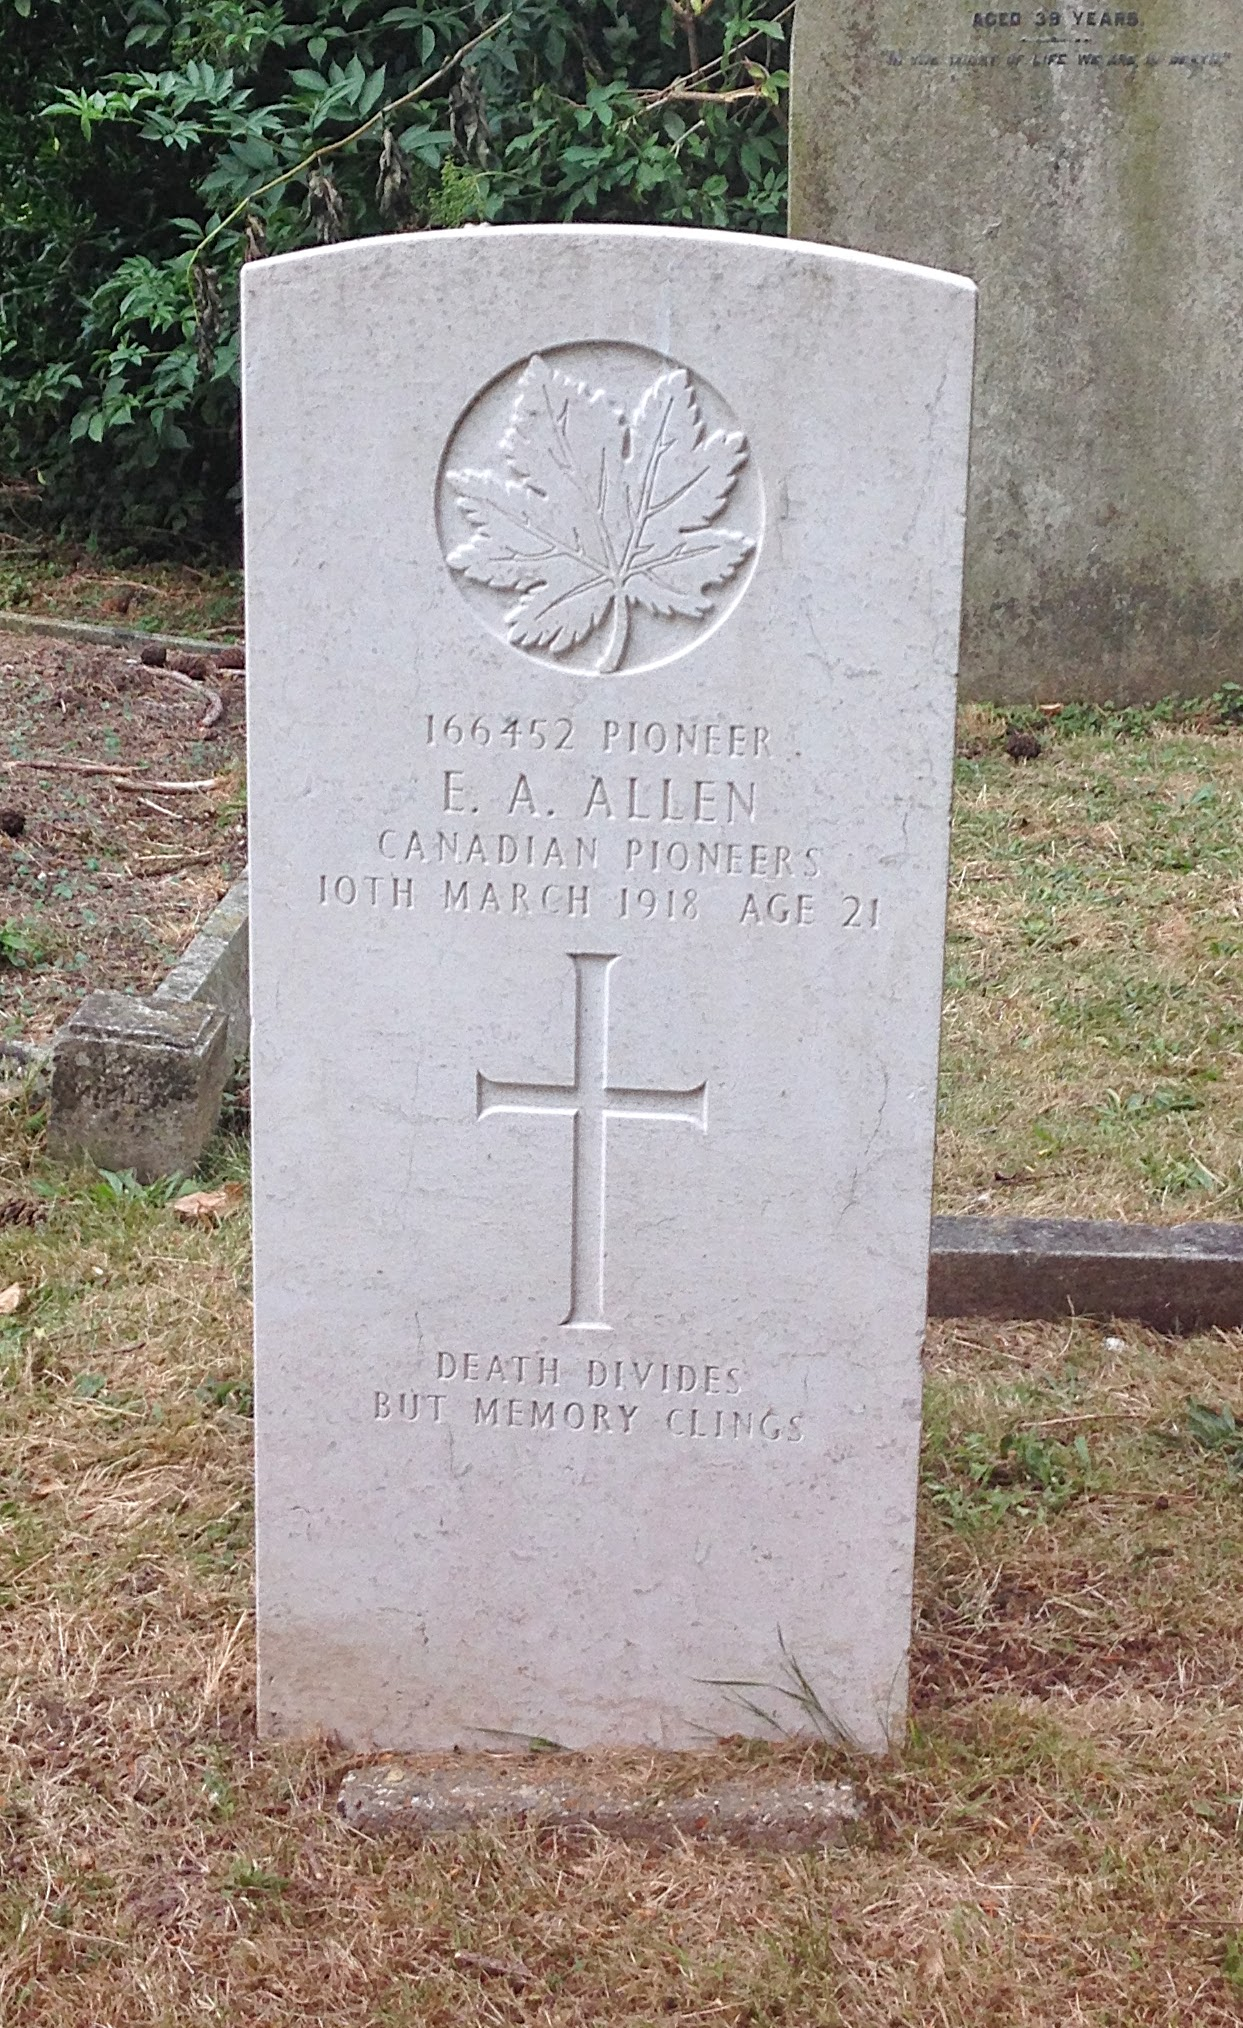 Grave Marker– A new headstone erected in 2014 in honor of Private E A Allen.   (photo taken July 5, 2014)